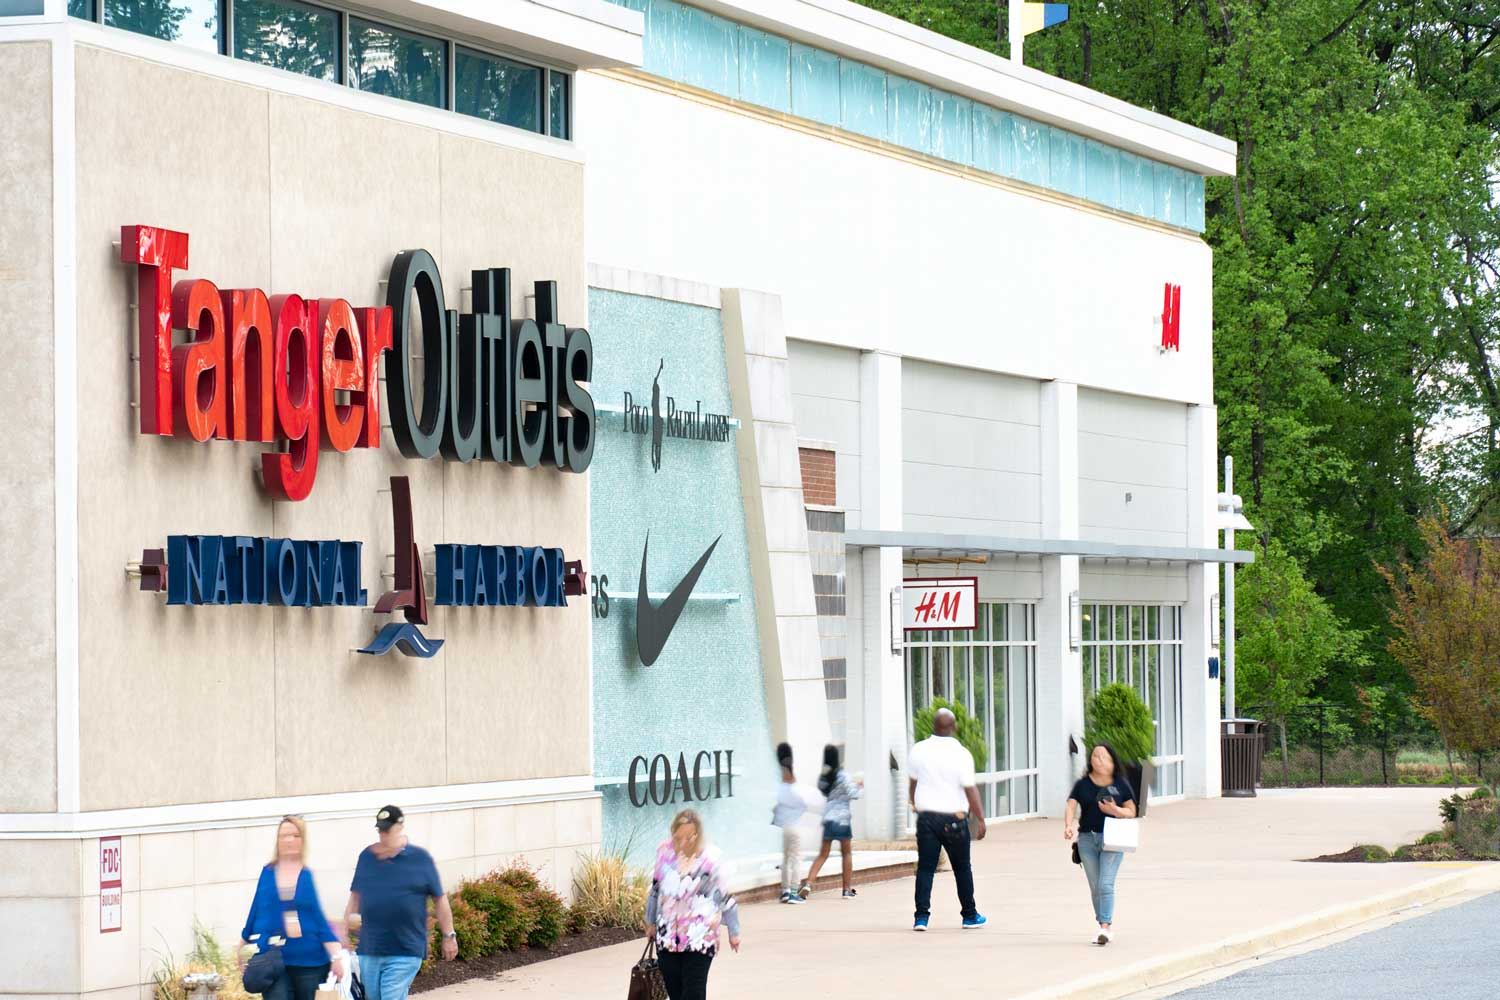 20 minutes to Tanger Outlets National Harbour